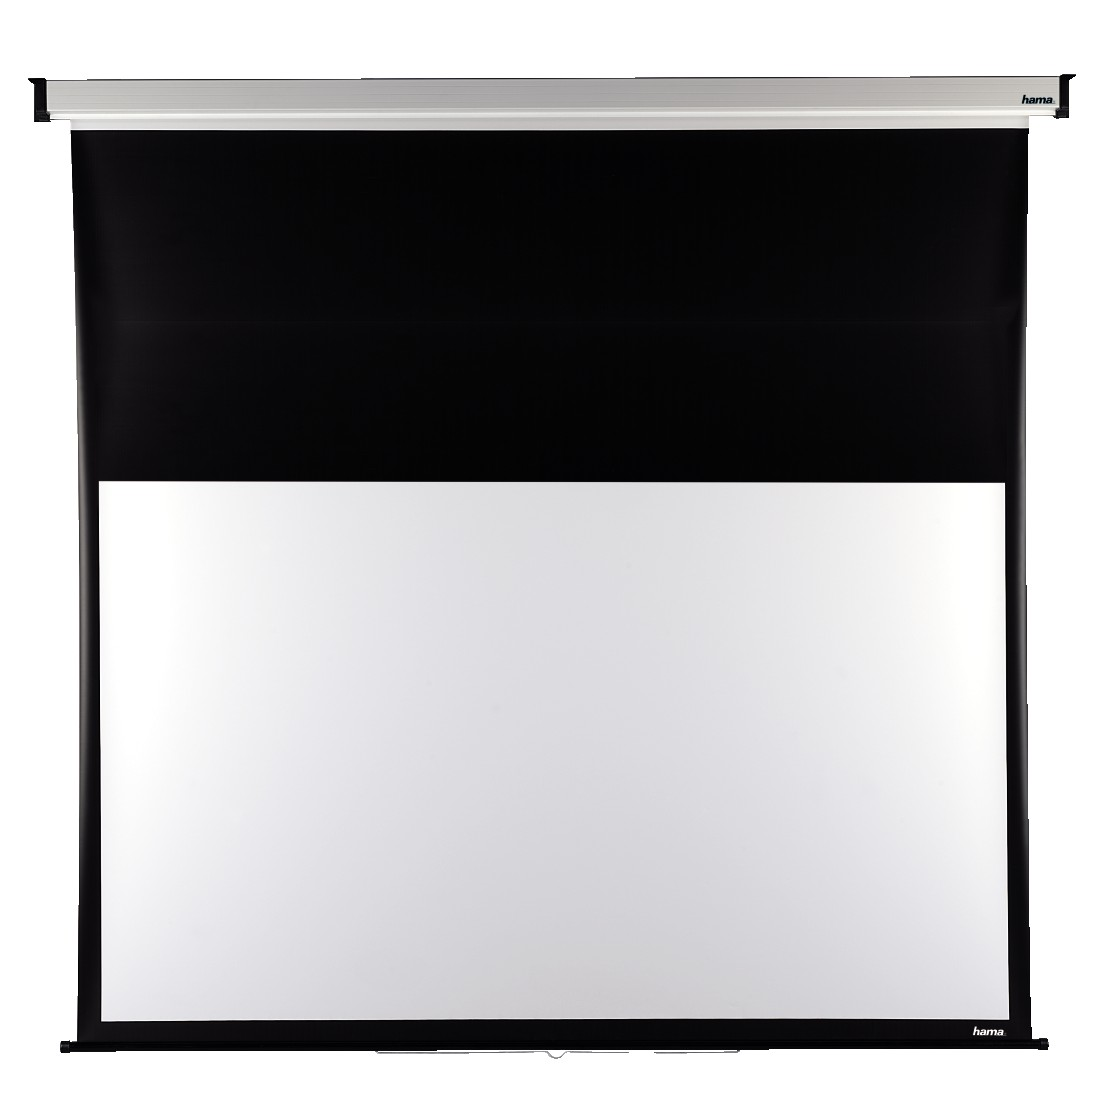 abx High-Res Image - Hama, Roller Projection Screen, 200 x 150 cm, 16:9